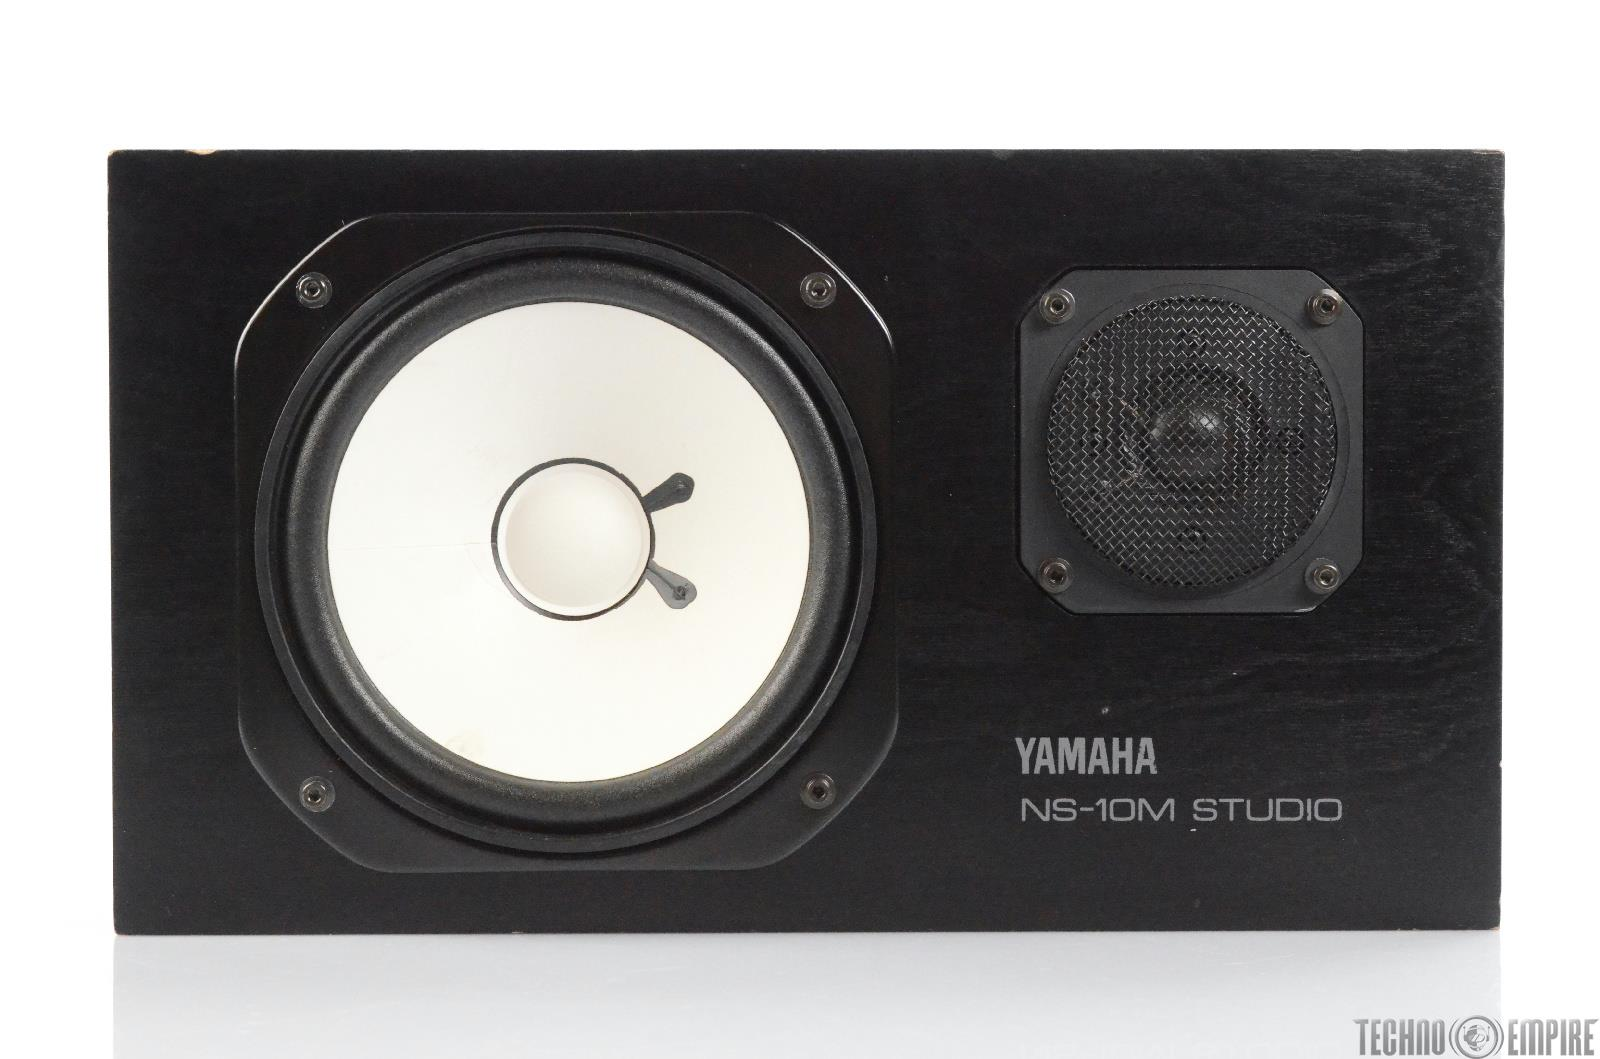 yamaha ns 10m studio speakers monitors ns10m reference. Black Bedroom Furniture Sets. Home Design Ideas